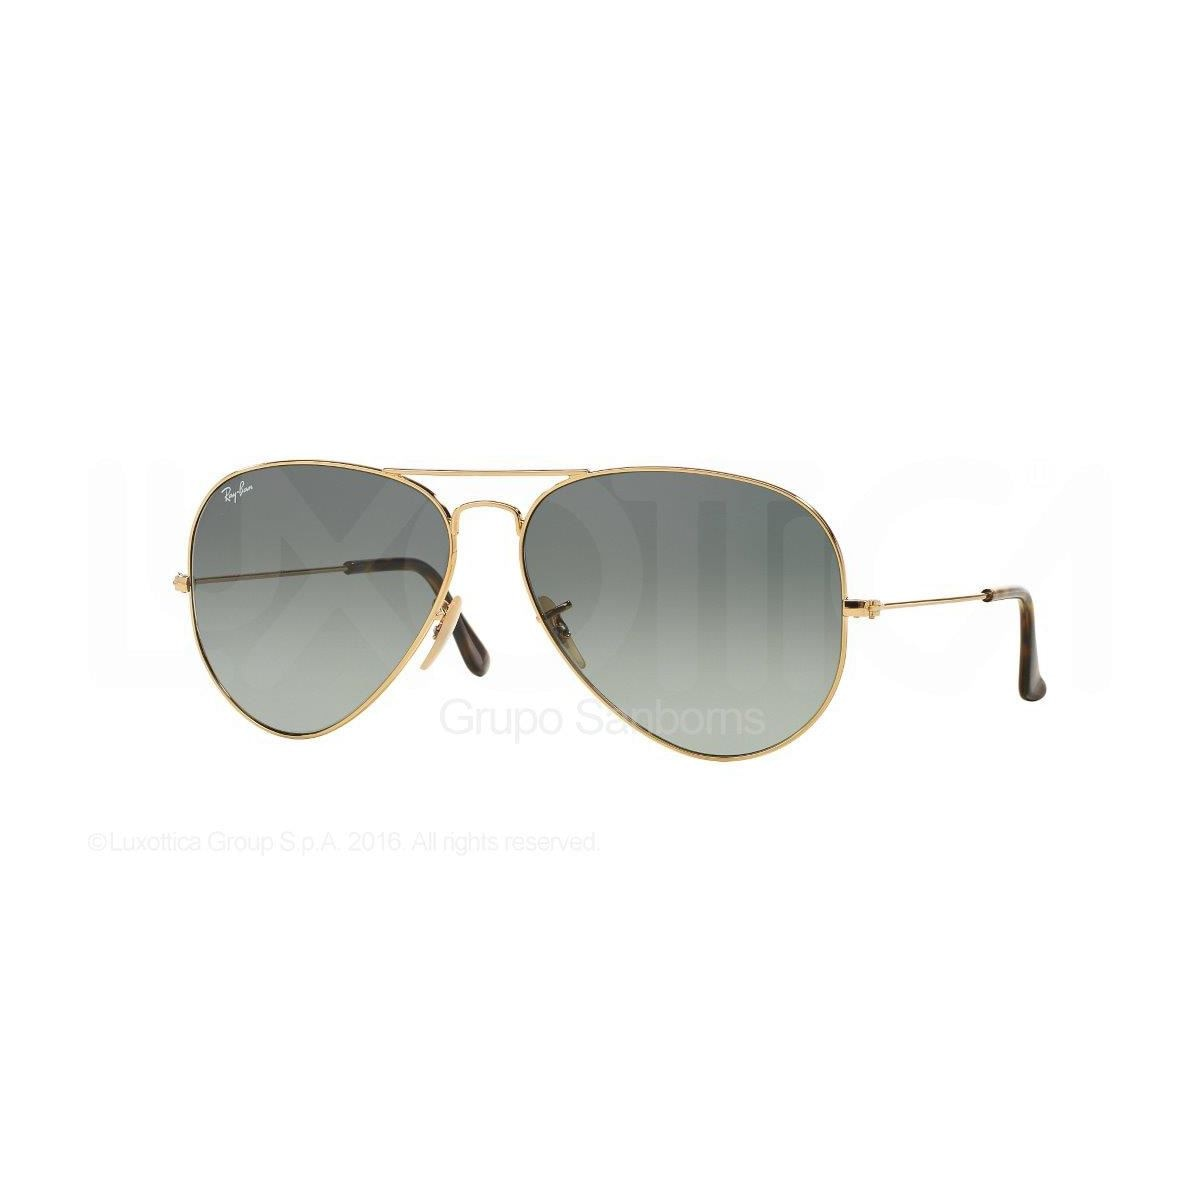 Solar ray ban 0rb3025 181/7158 h  - Sanborns